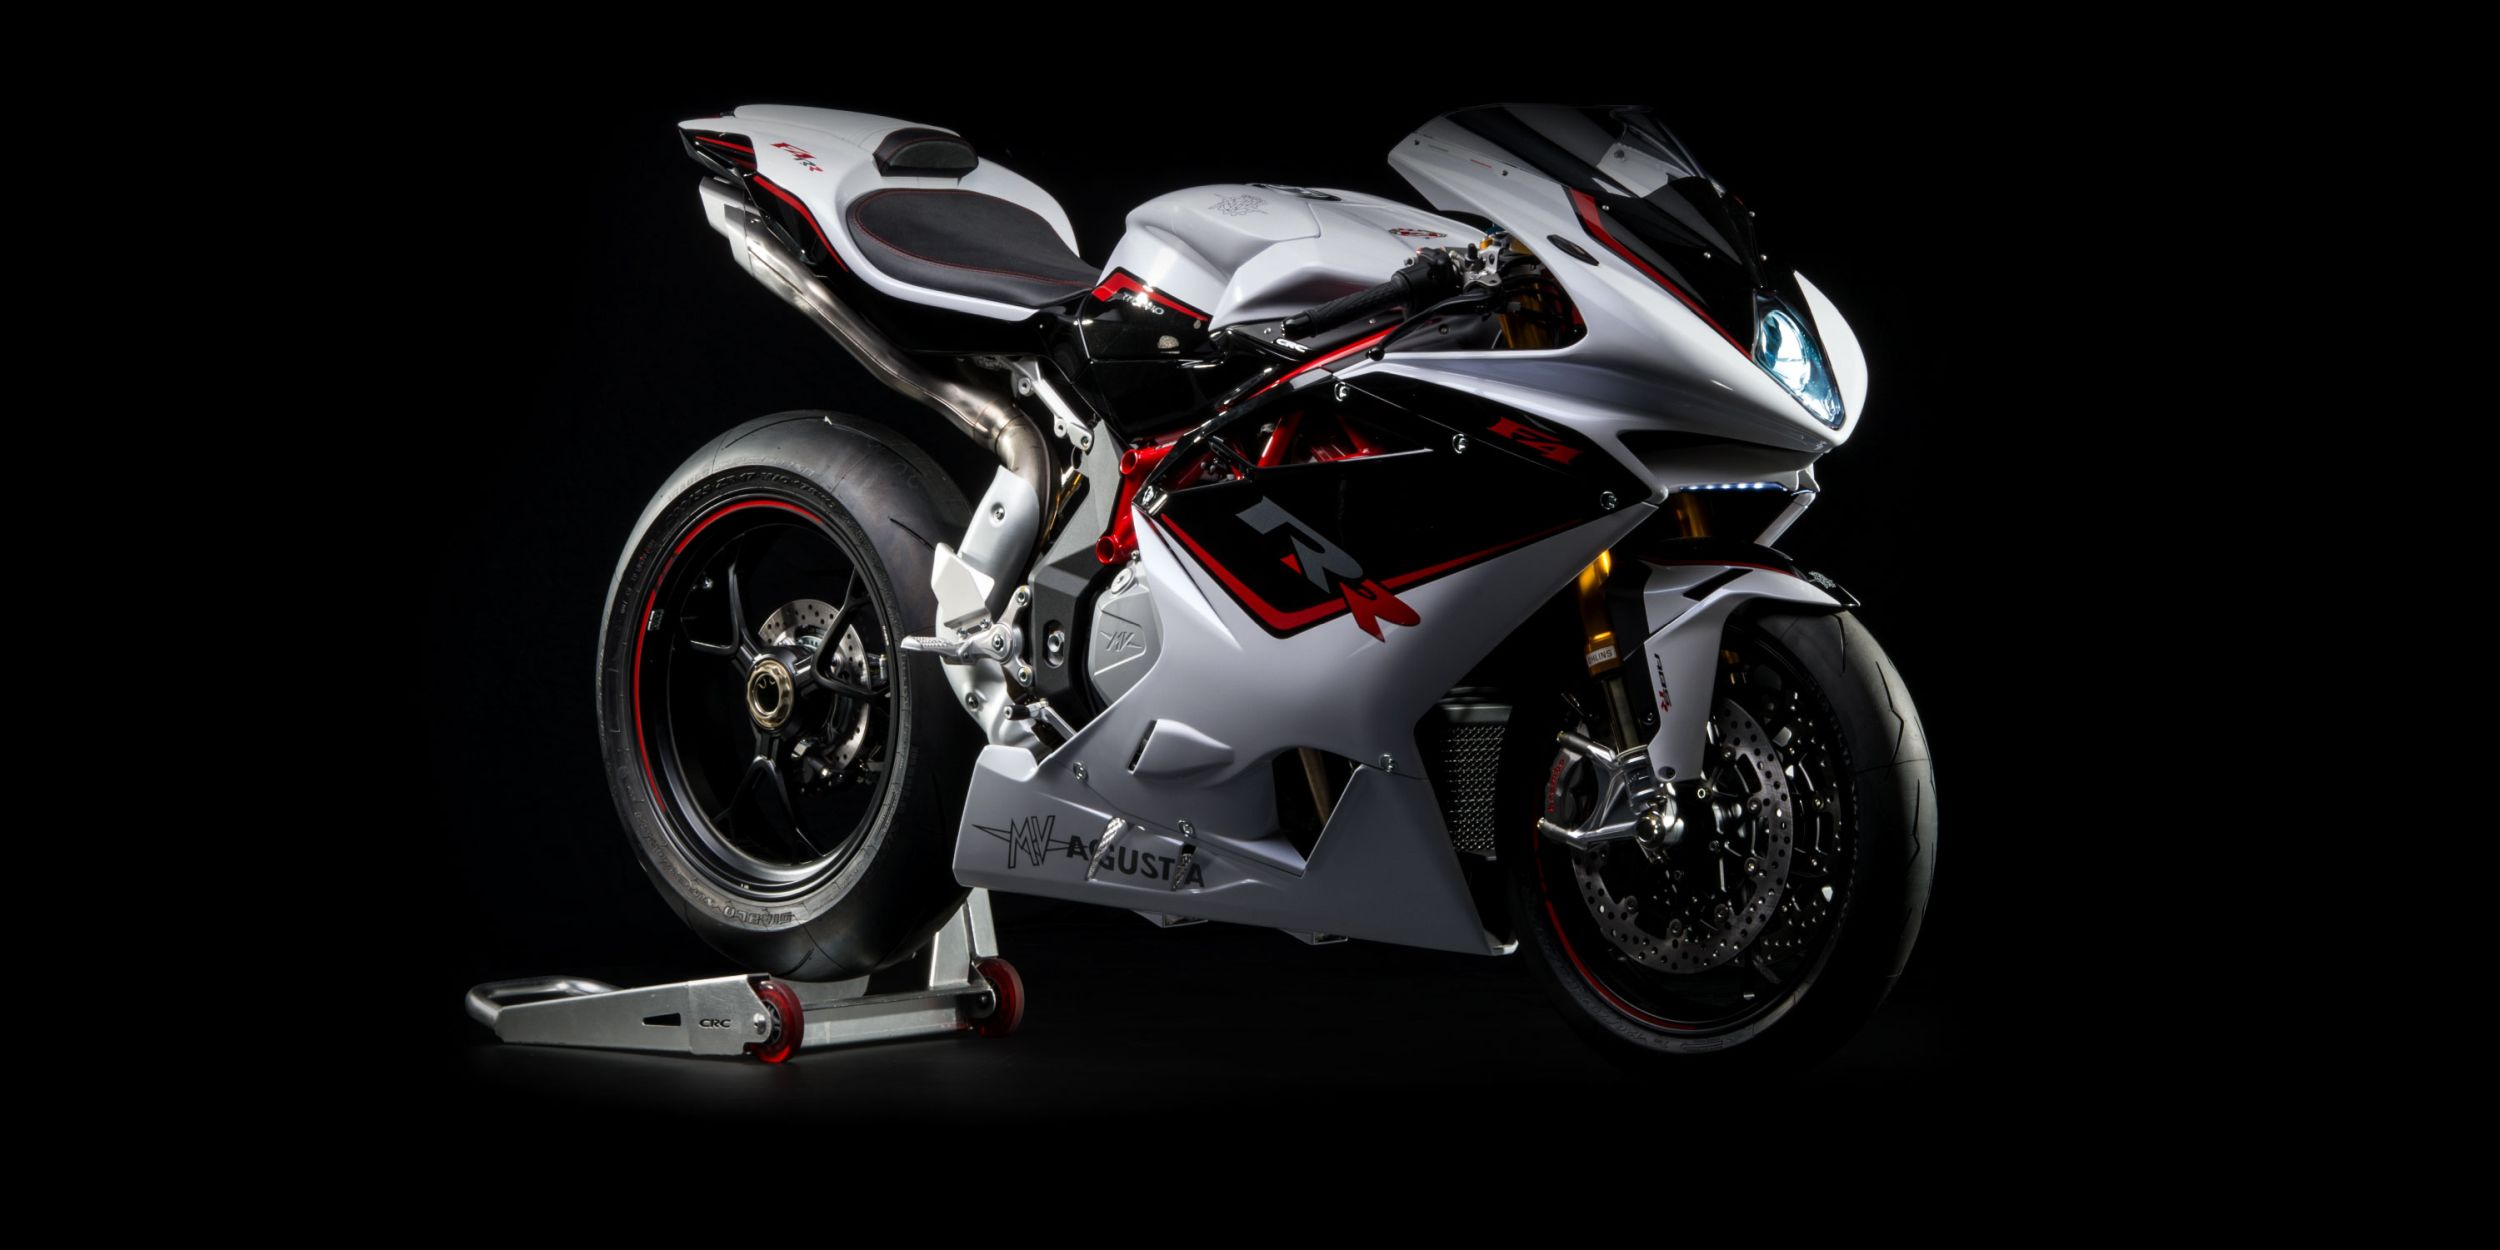 mv agusta f4 rr alle technischen daten zum modell f4 rr. Black Bedroom Furniture Sets. Home Design Ideas